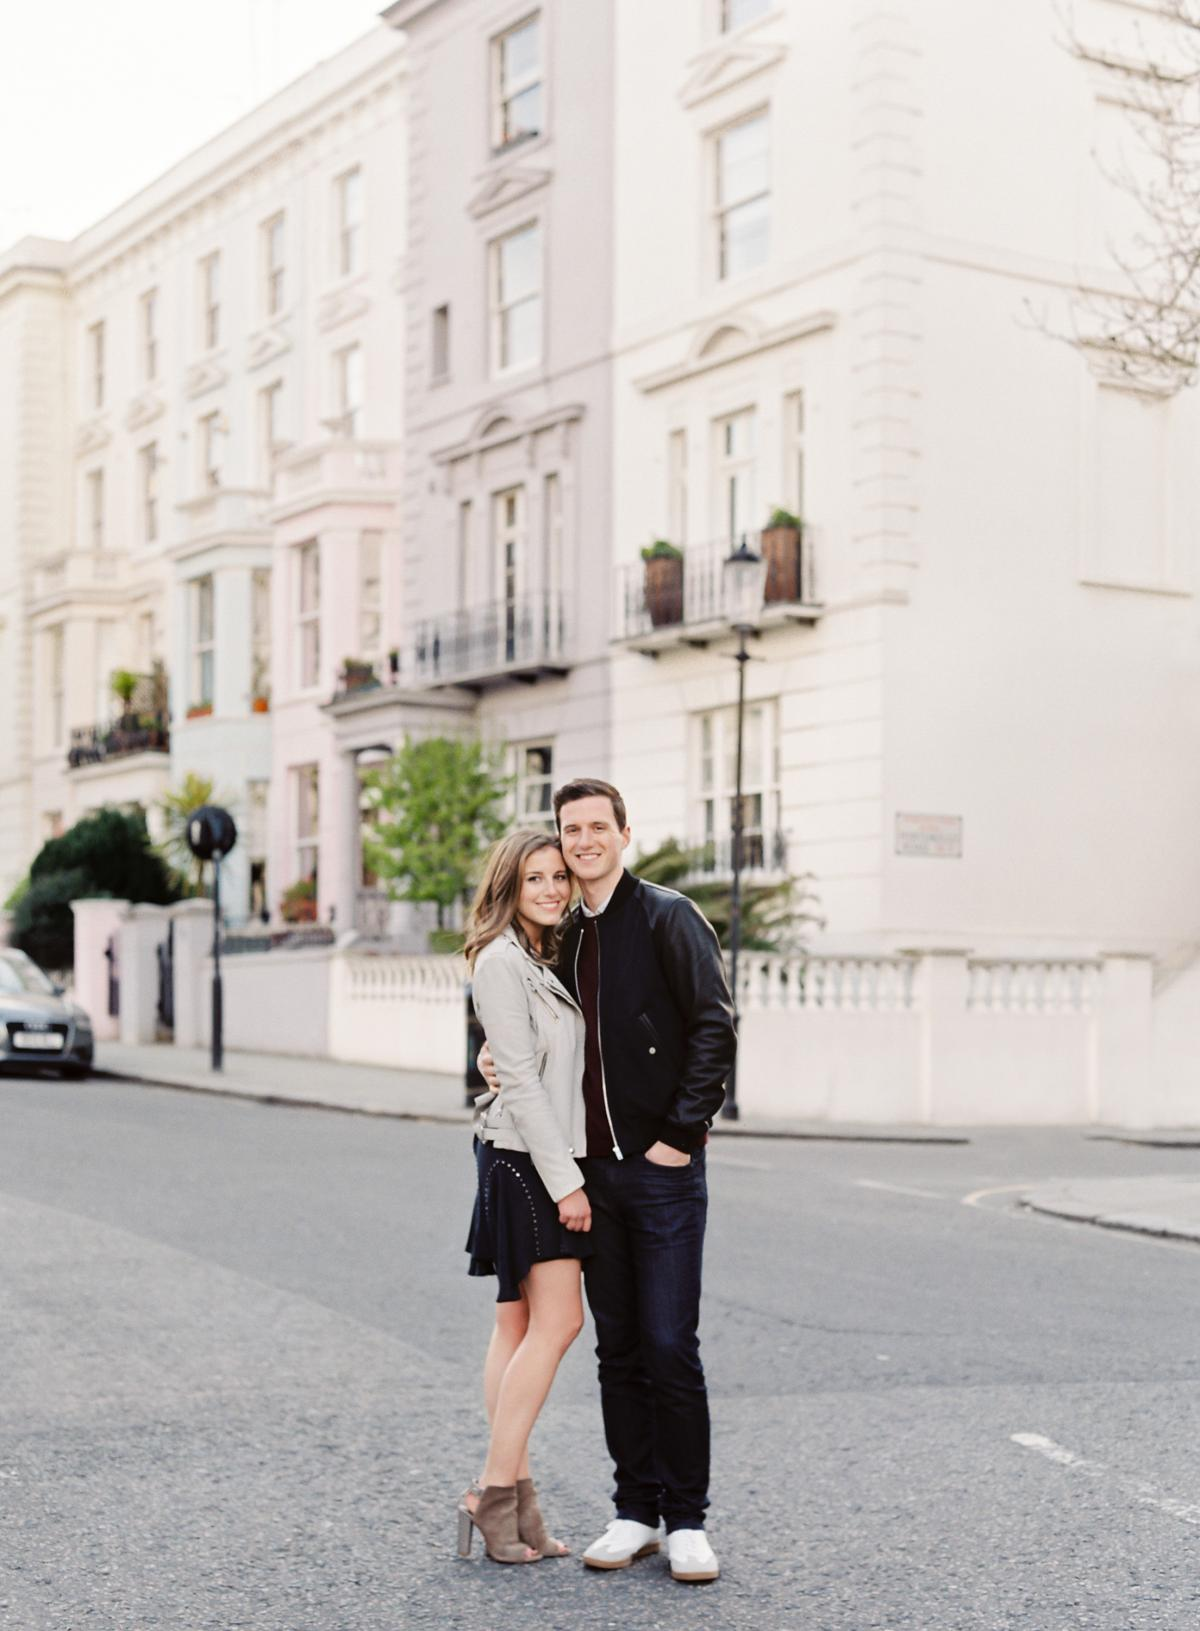 London England Engagement Photos Omalley Photographers 0009